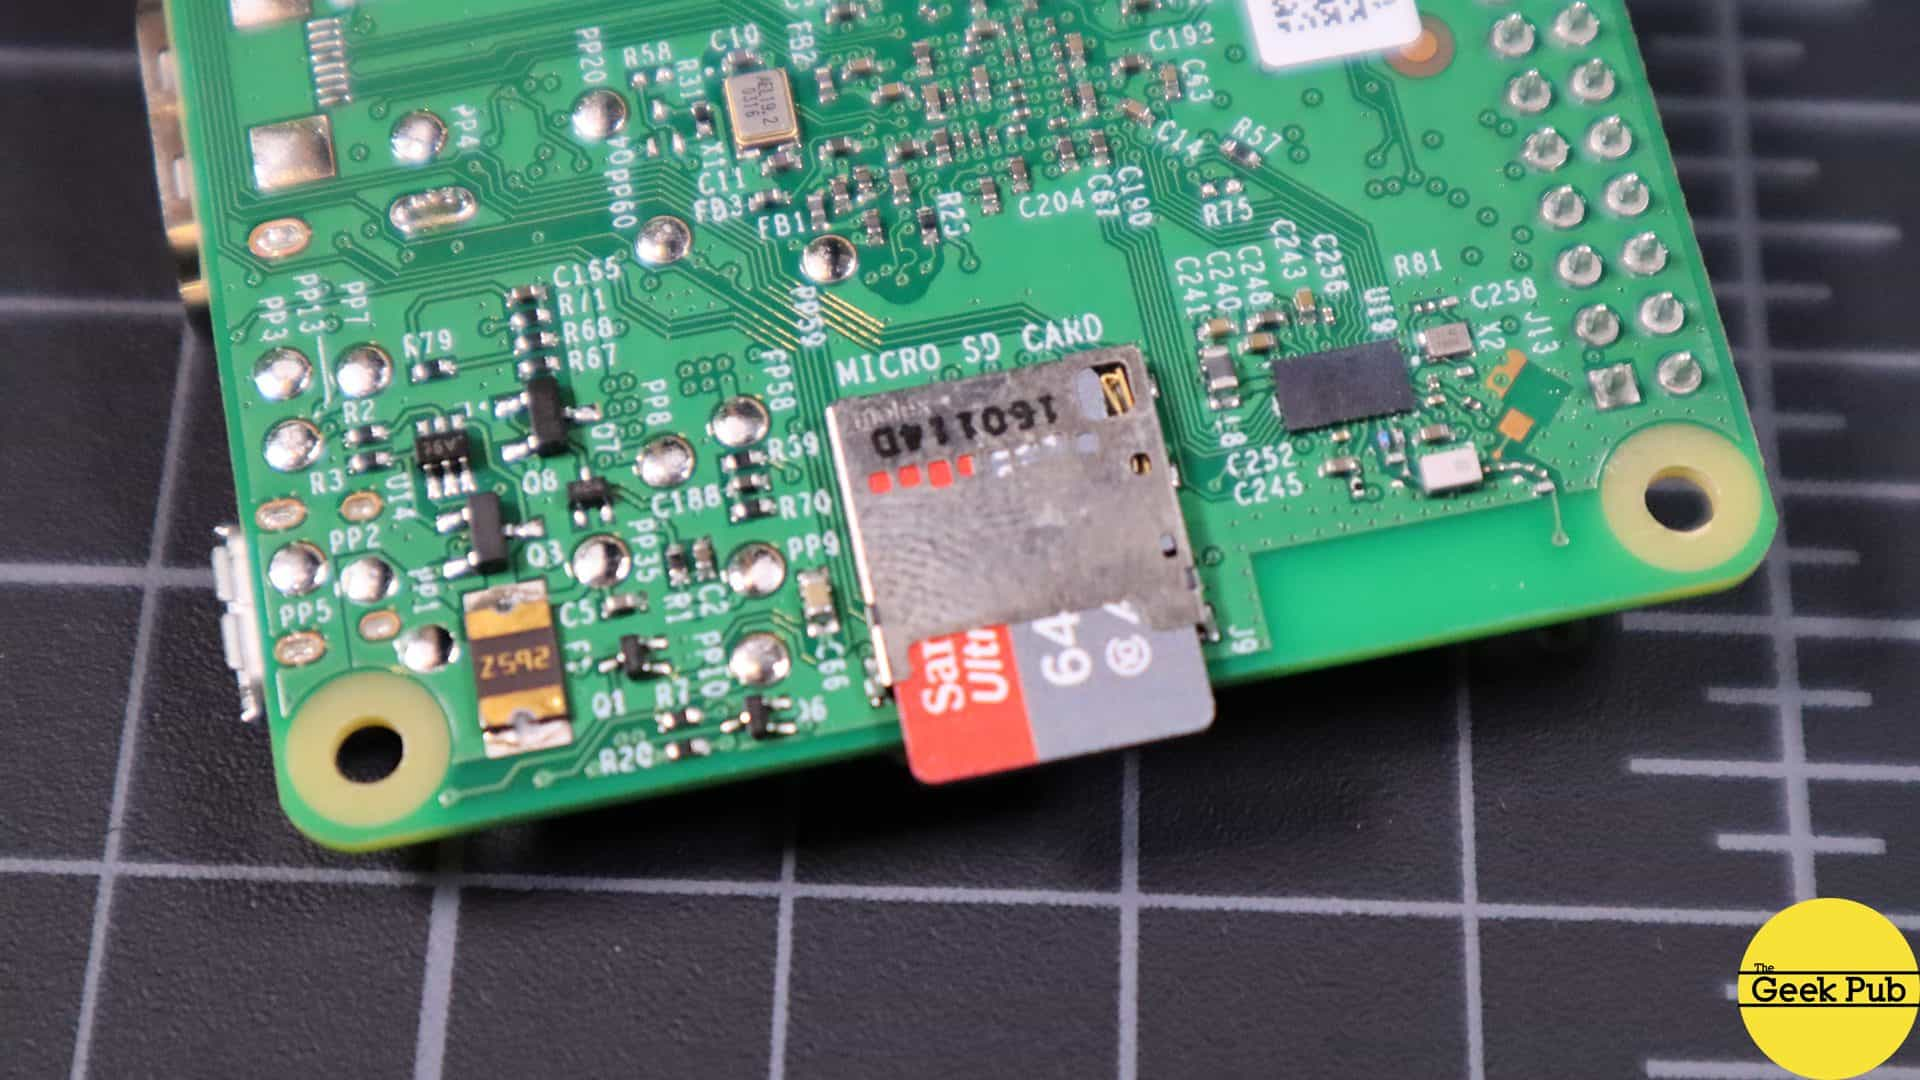 insert the newly burned SD card